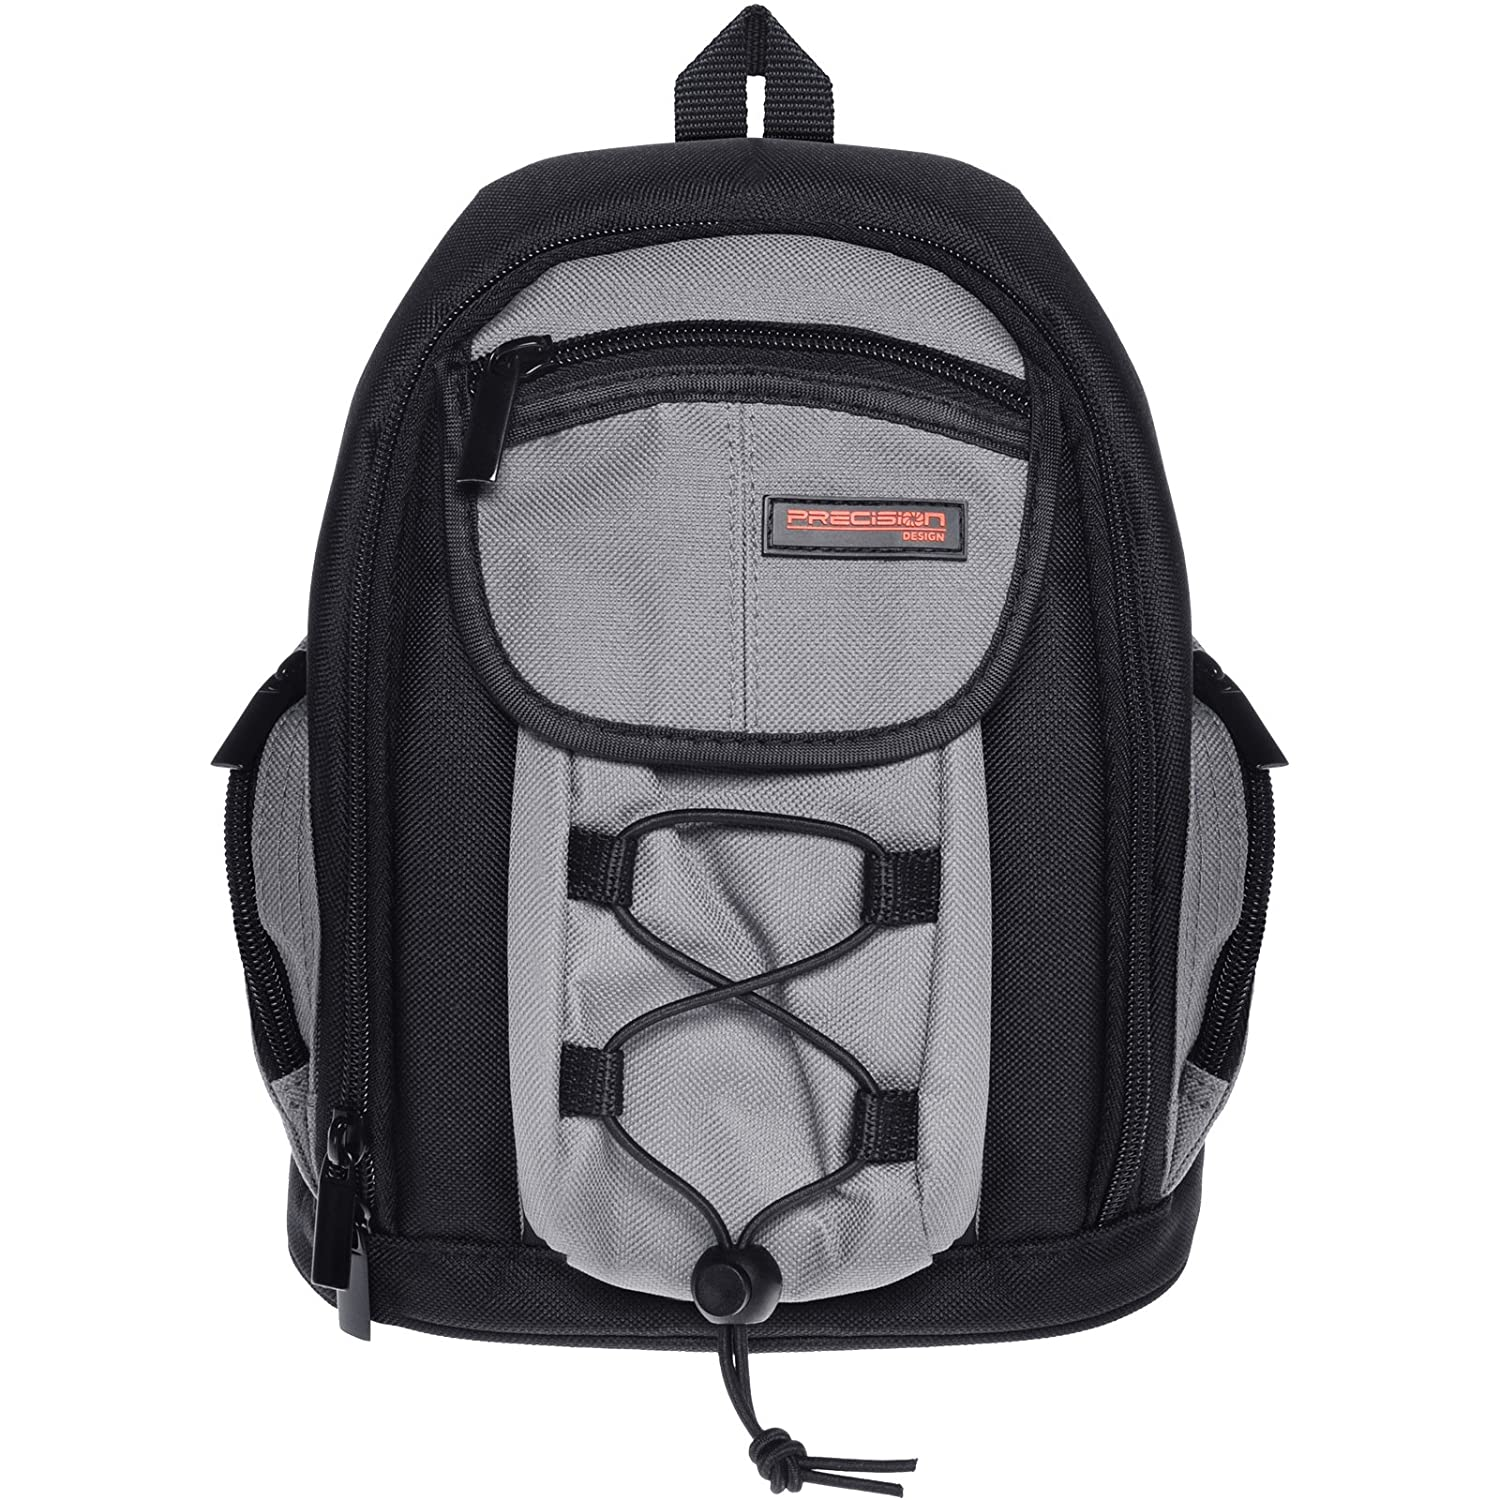 Precision Design PD-MBP ILC Digital Camera Mini Sling Backpack for Mirrorless Interchangeable Lens Cameras chic